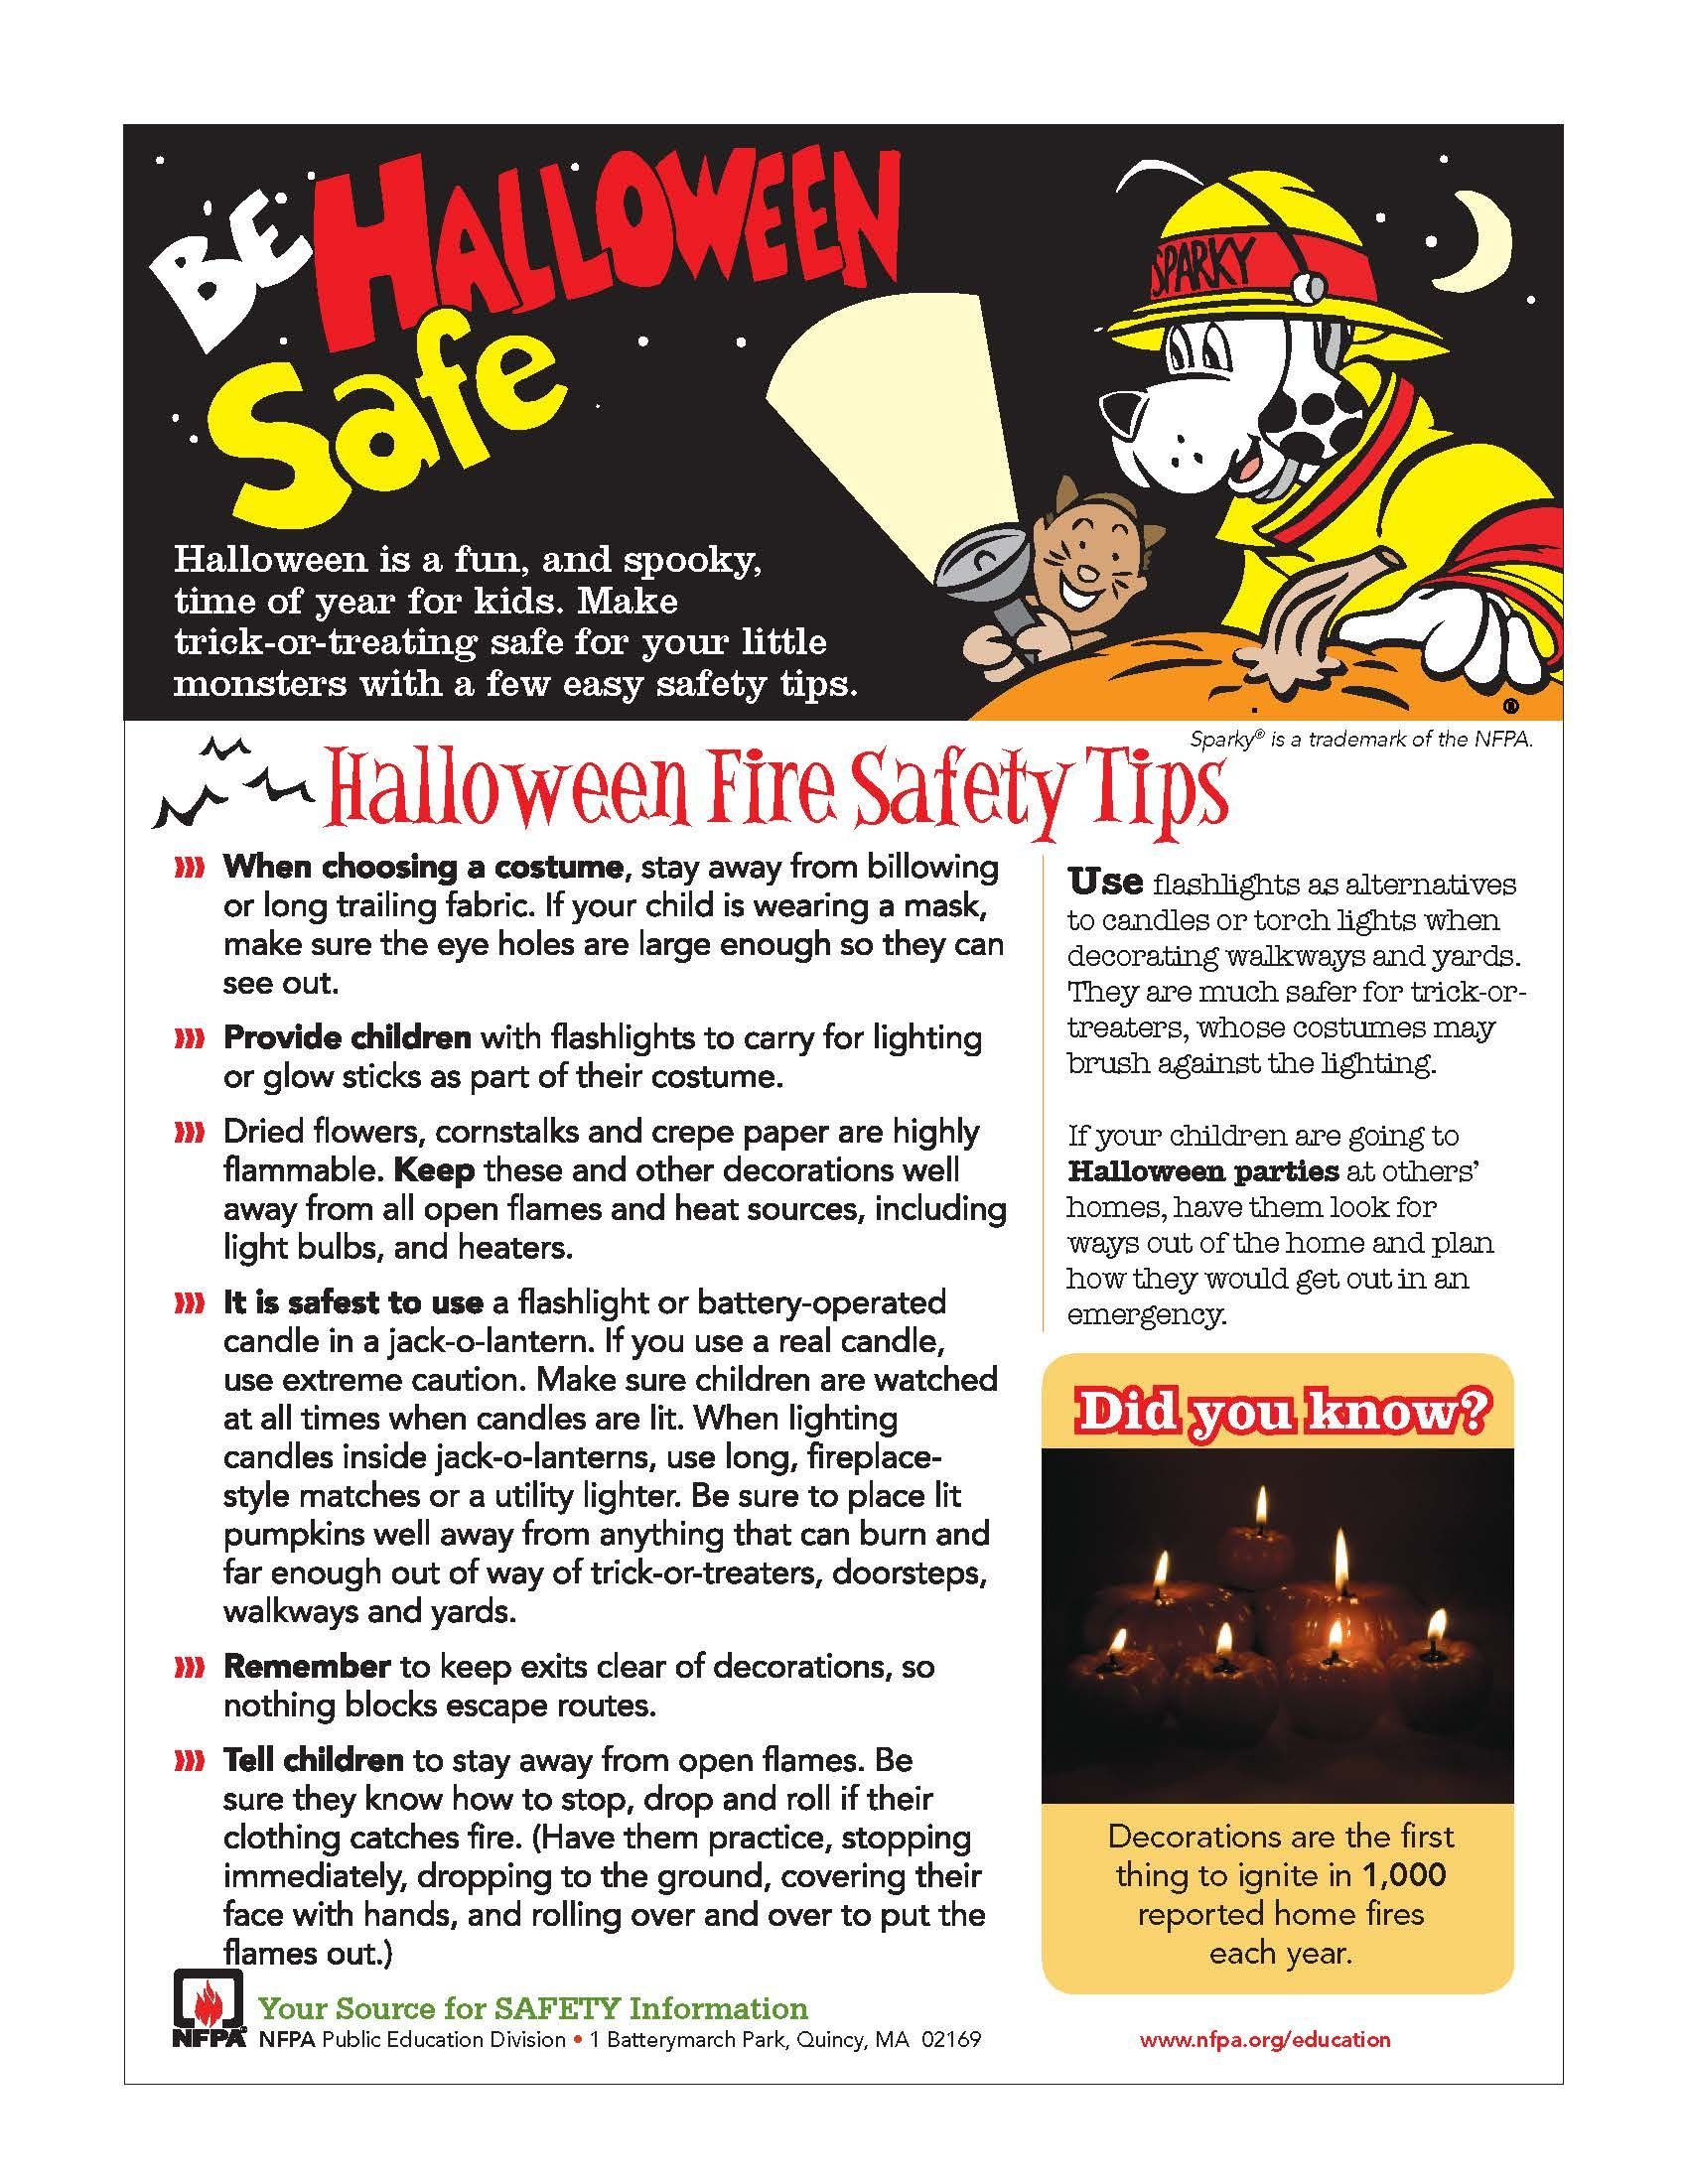 Halloween safety tips from the National Fire Protection